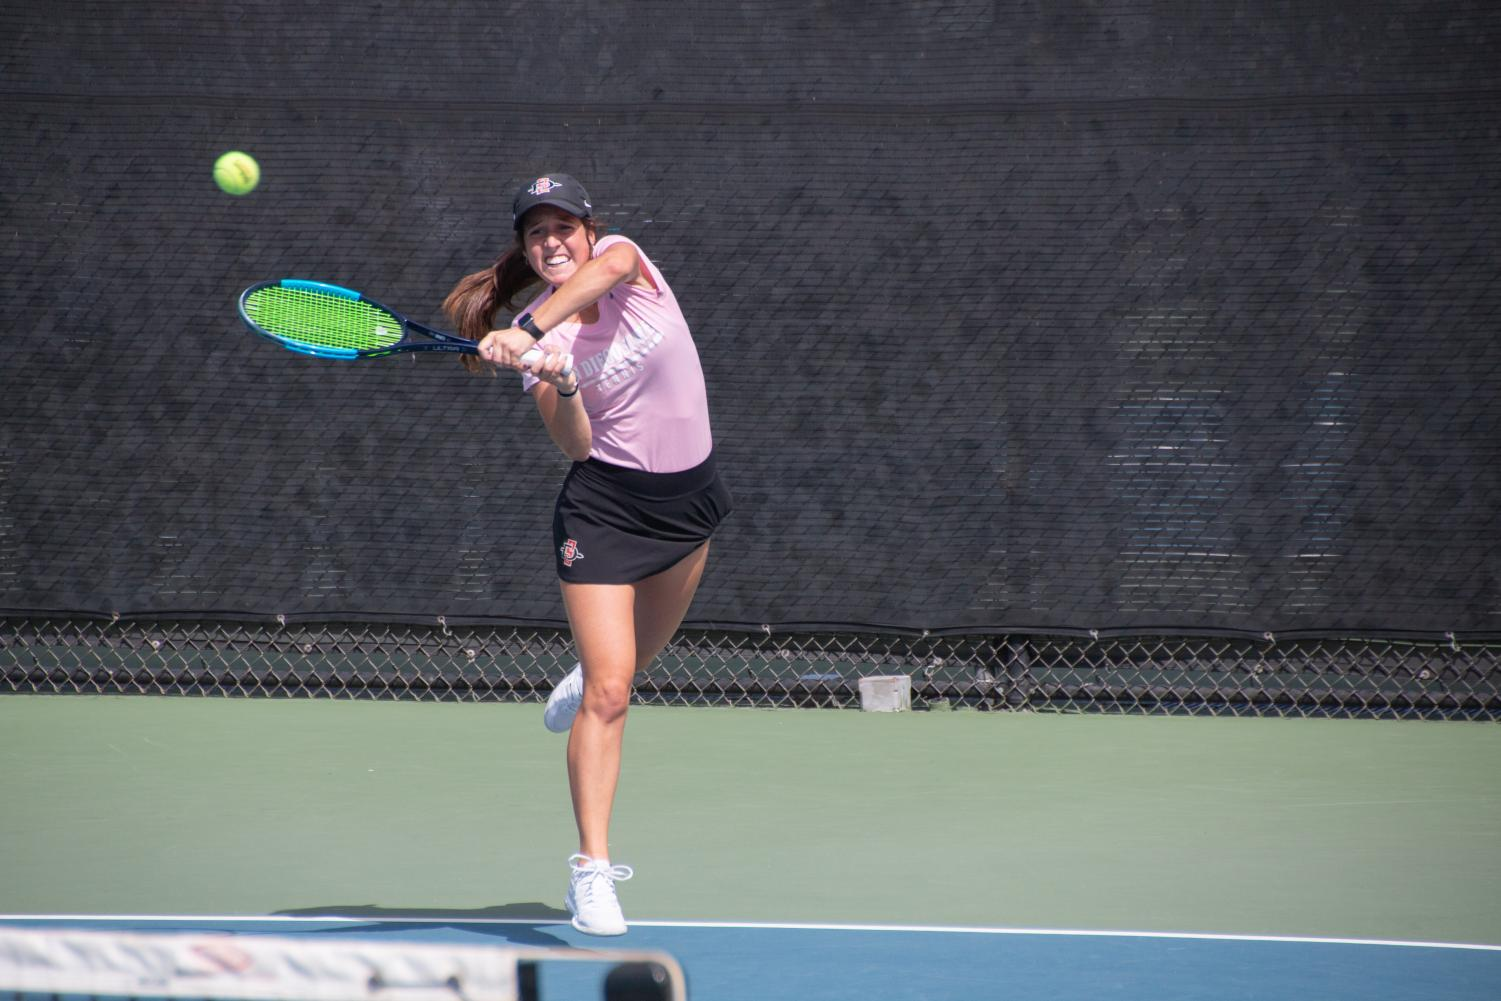 Junior Abbie Mulbarger swings at the ball during the SDSU Fall Classic I on Sept. 29 at Aztec Tennis Center.